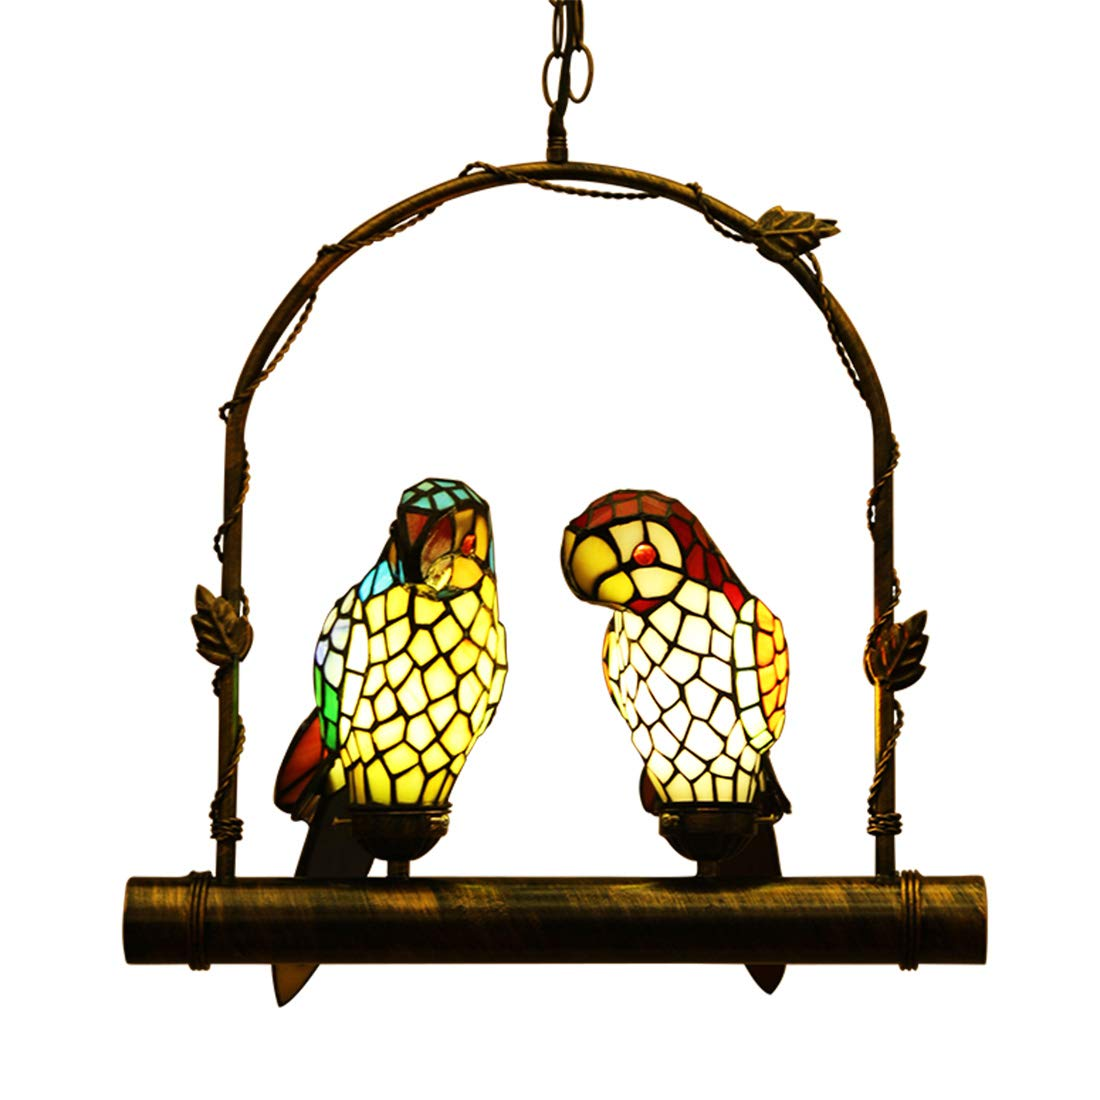 Makenier Vintage Tiffany Style Stained Glass Double Parrots Pendant Lamp